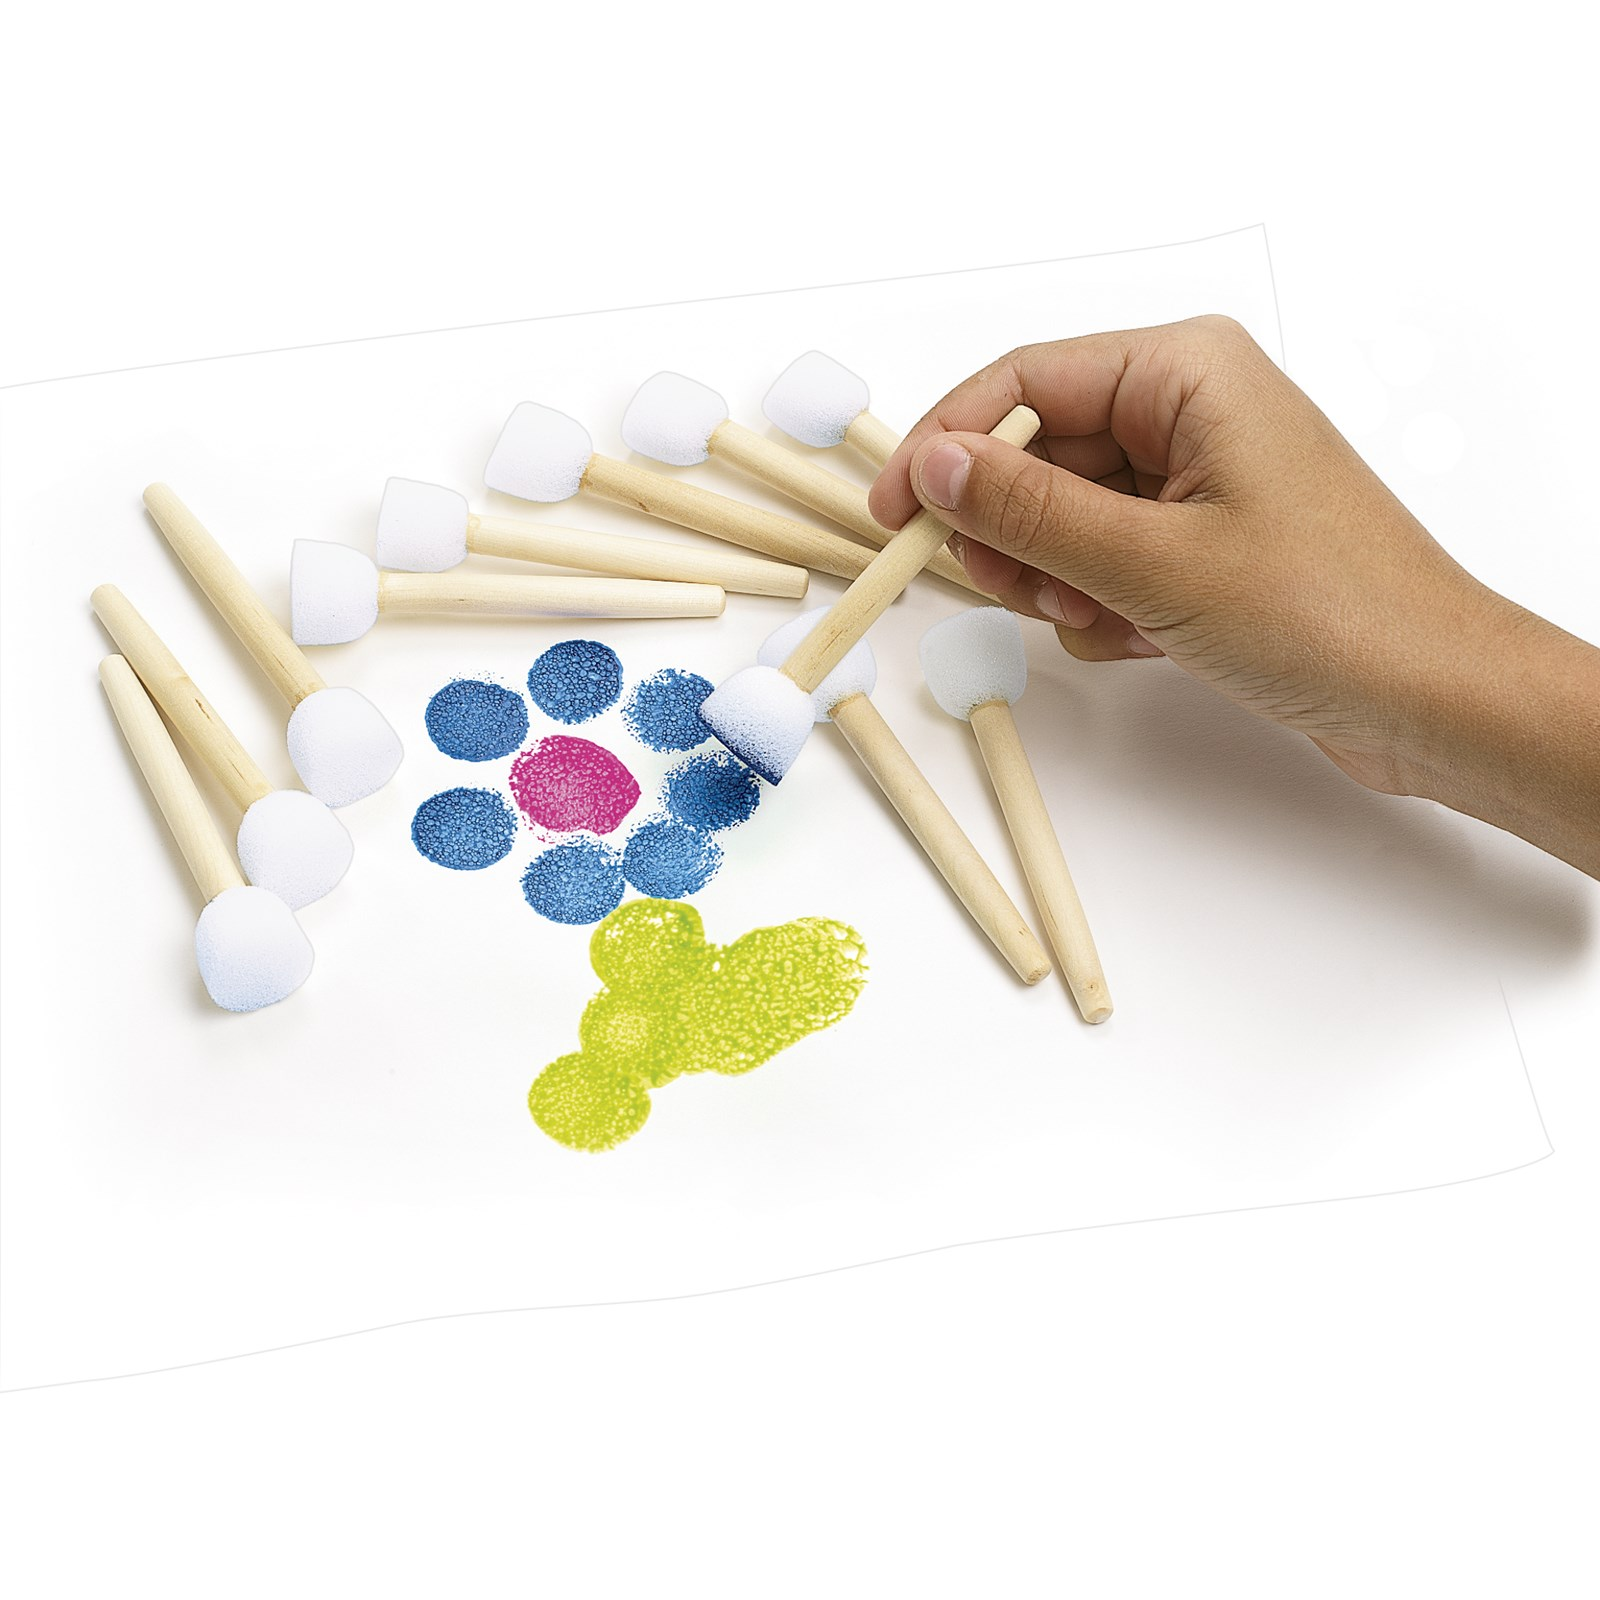 Paint-A-Dot Brushes